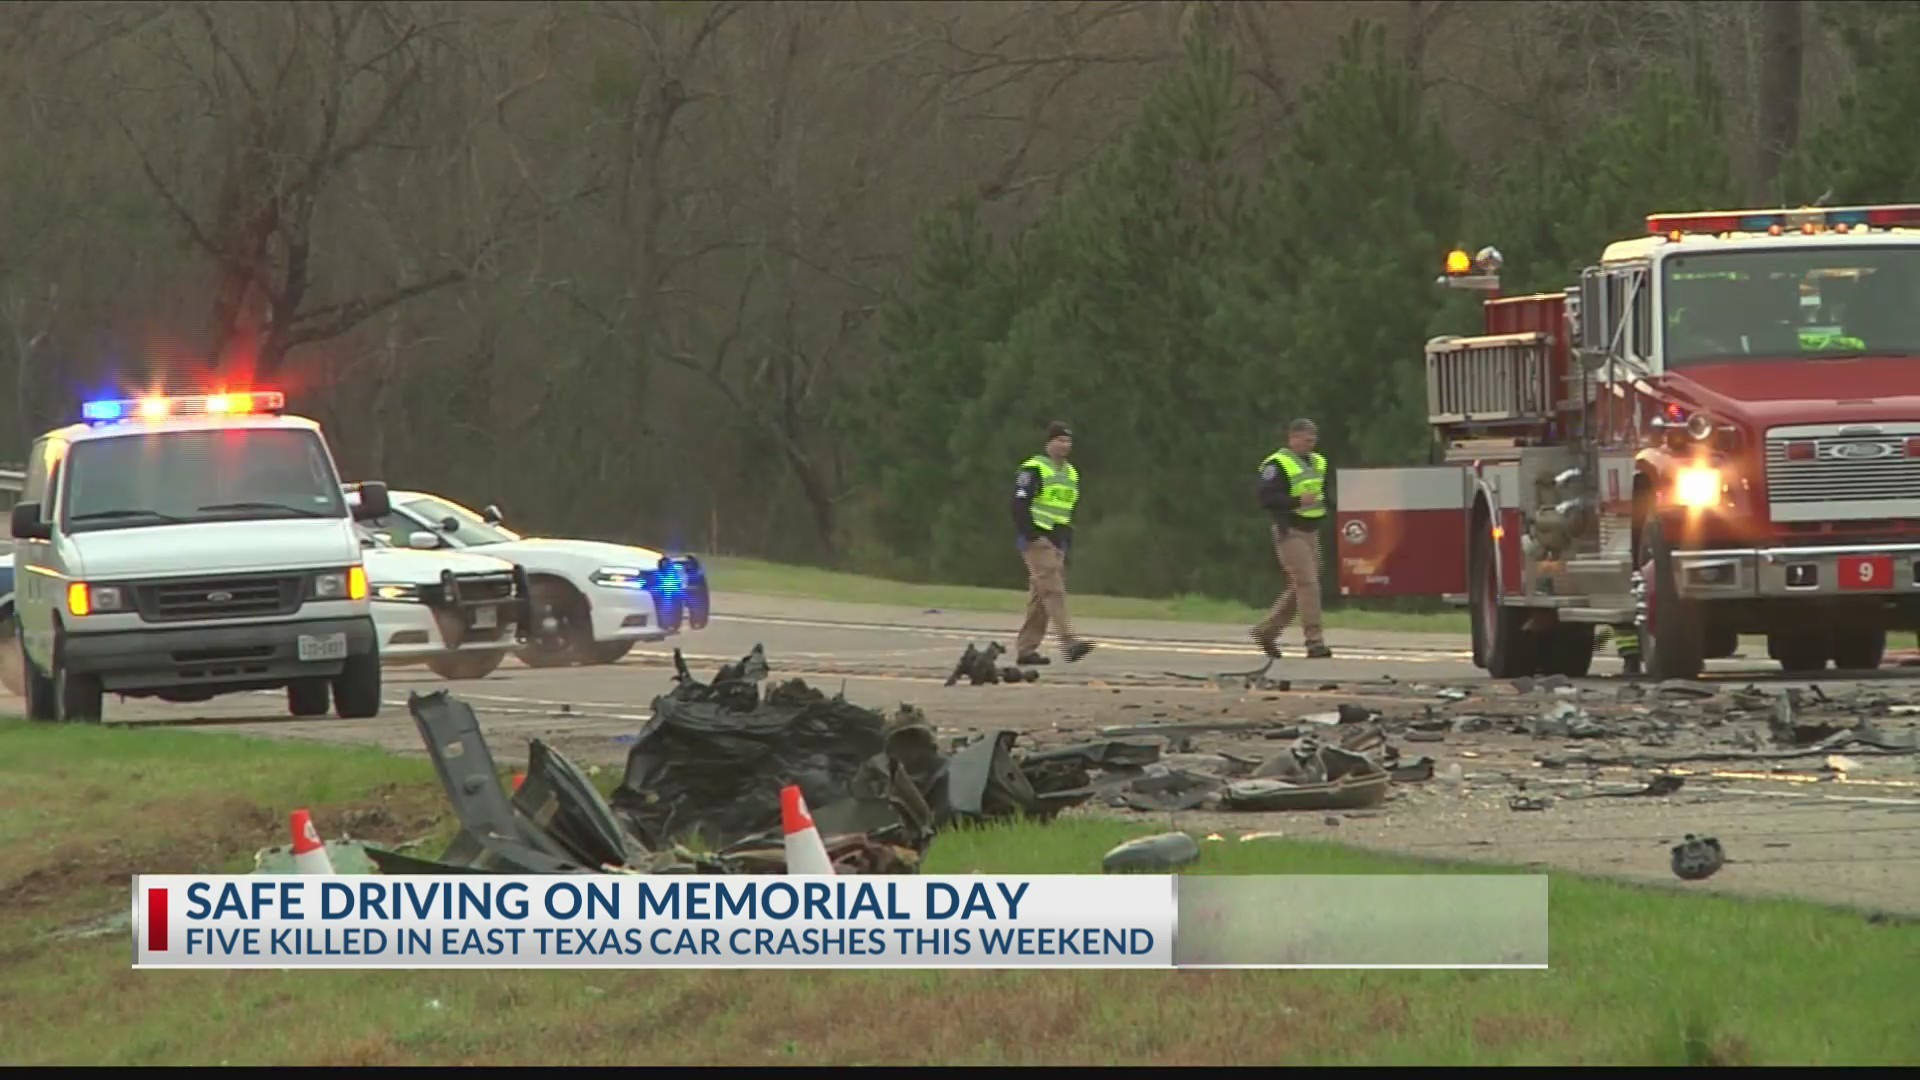 BUCKLE UP: Memorial Day weekend crashes show dangers of driving